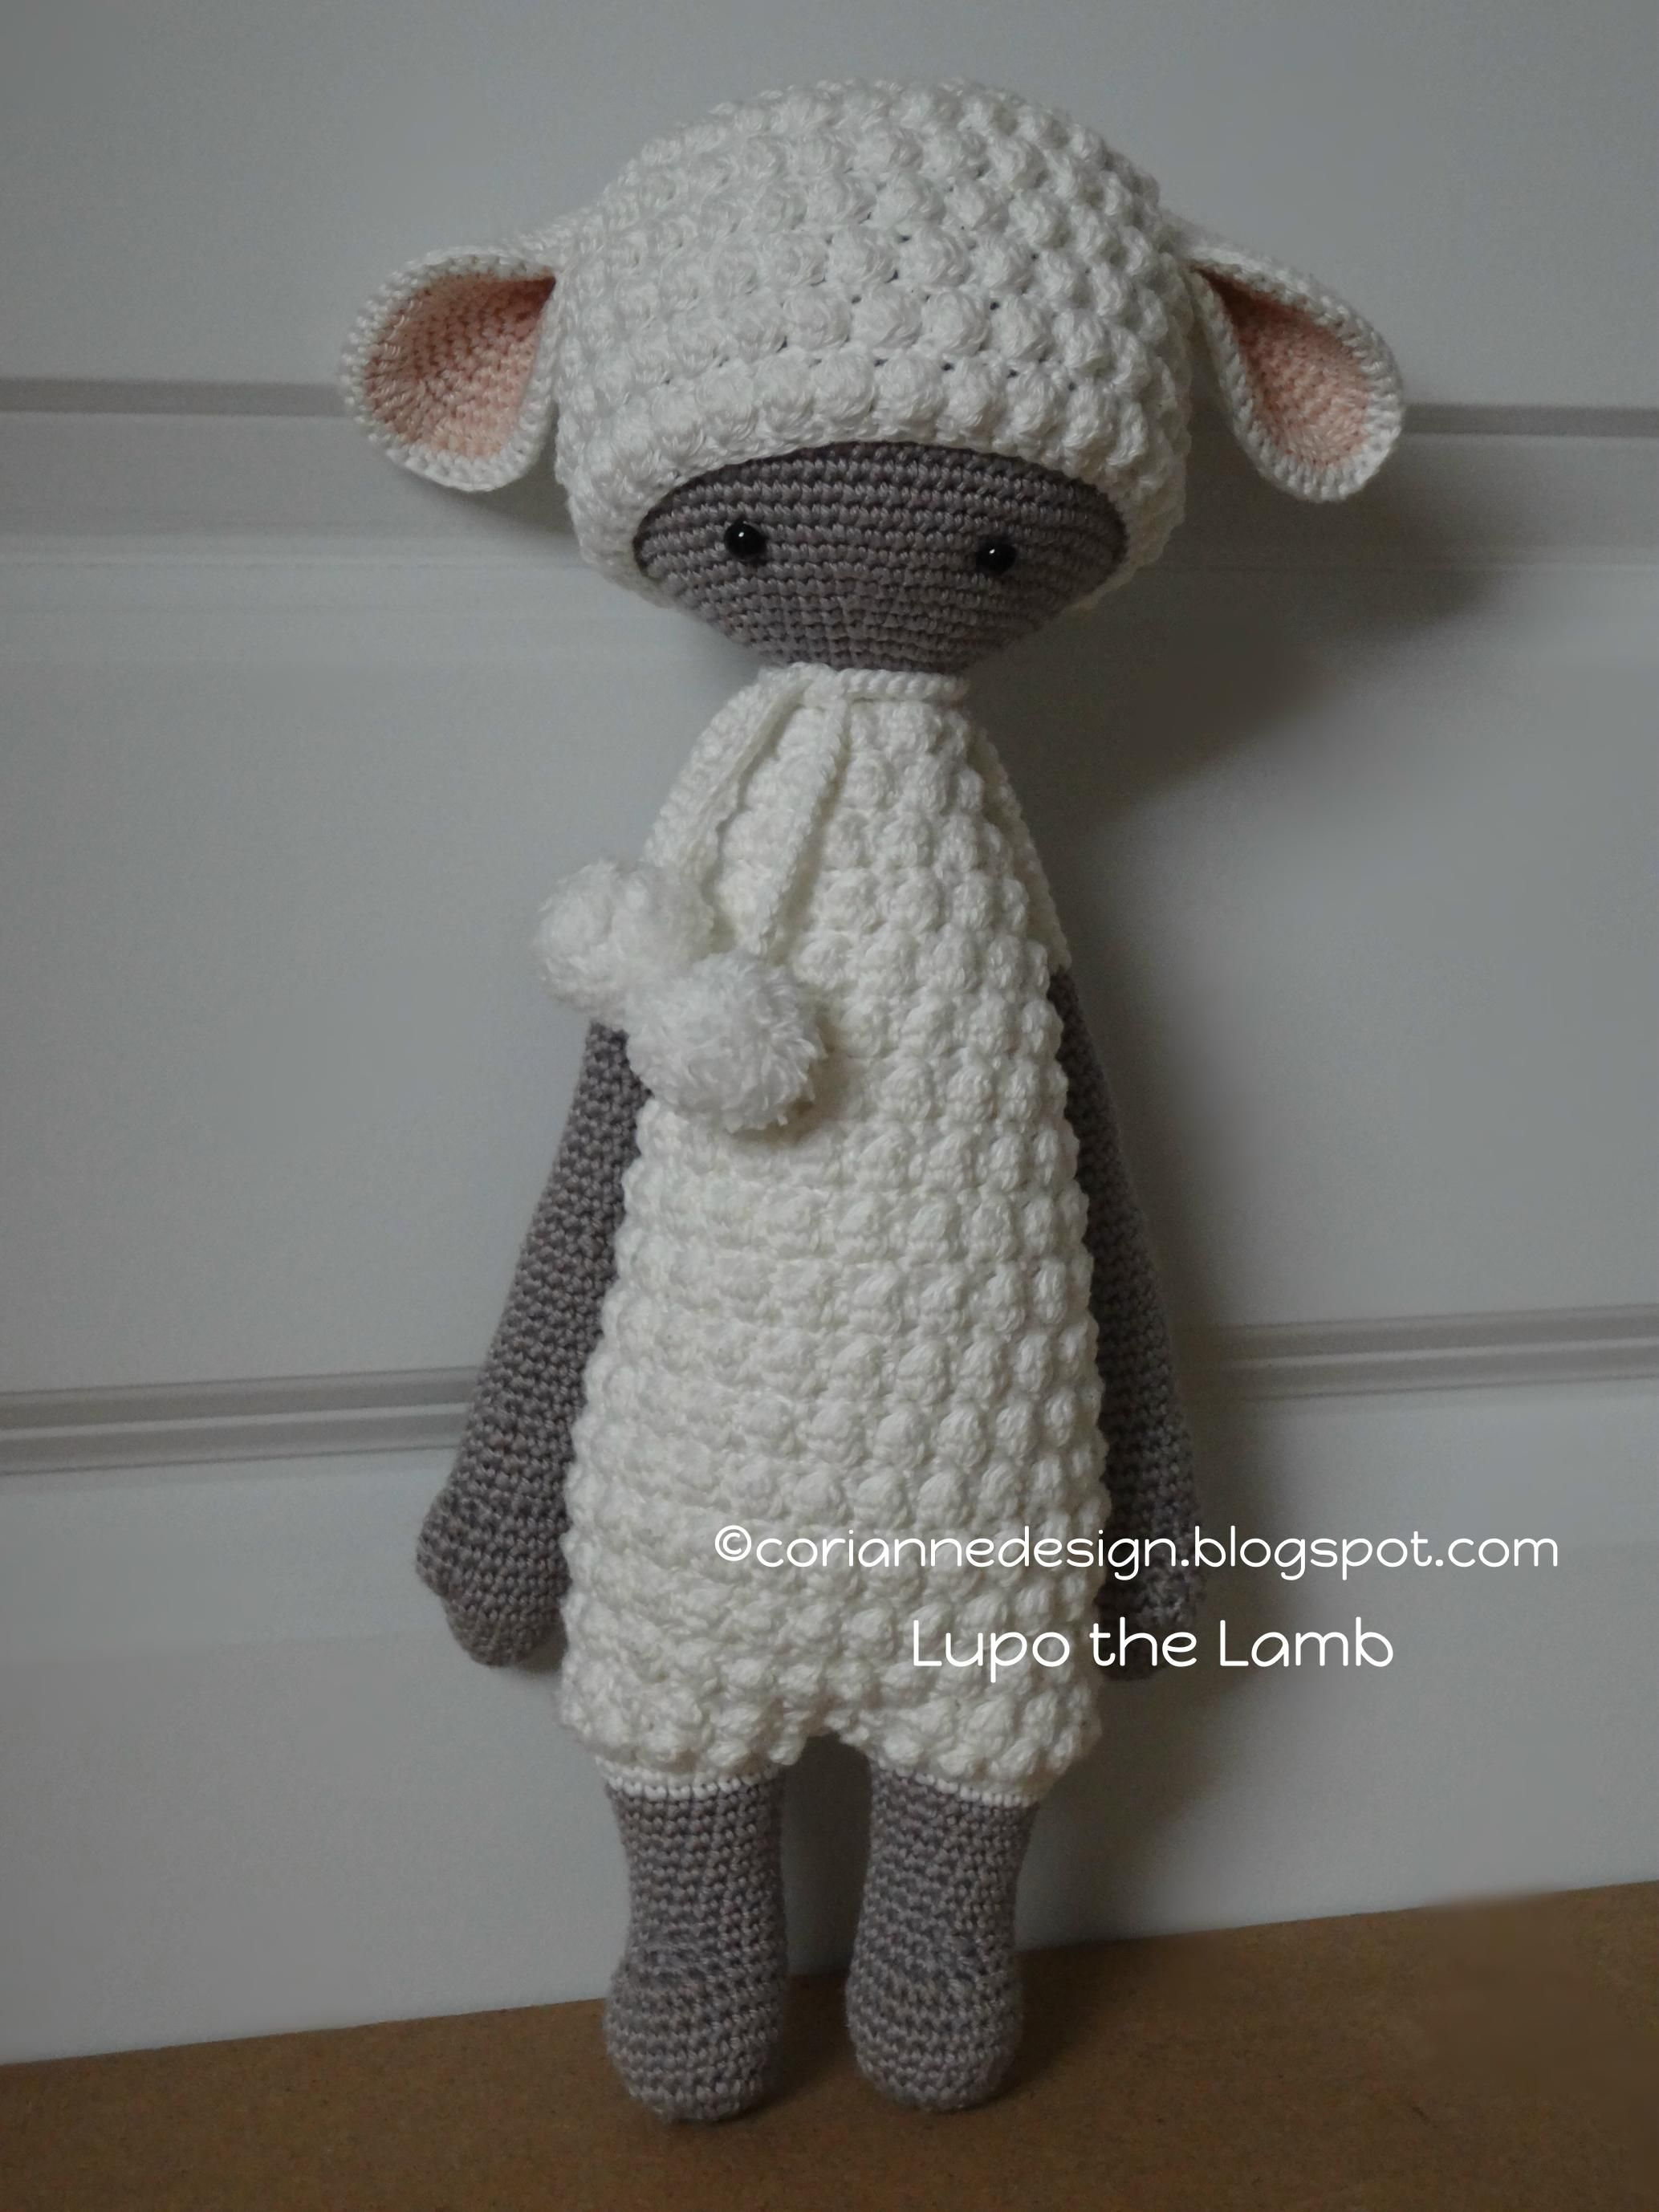 "Lupo the Lamb ""This doll is handmade by Corianne (CorianneDesign) from a design and pattern by lalylala handmade . Lydia Tresselt / www.lalylala.com"""